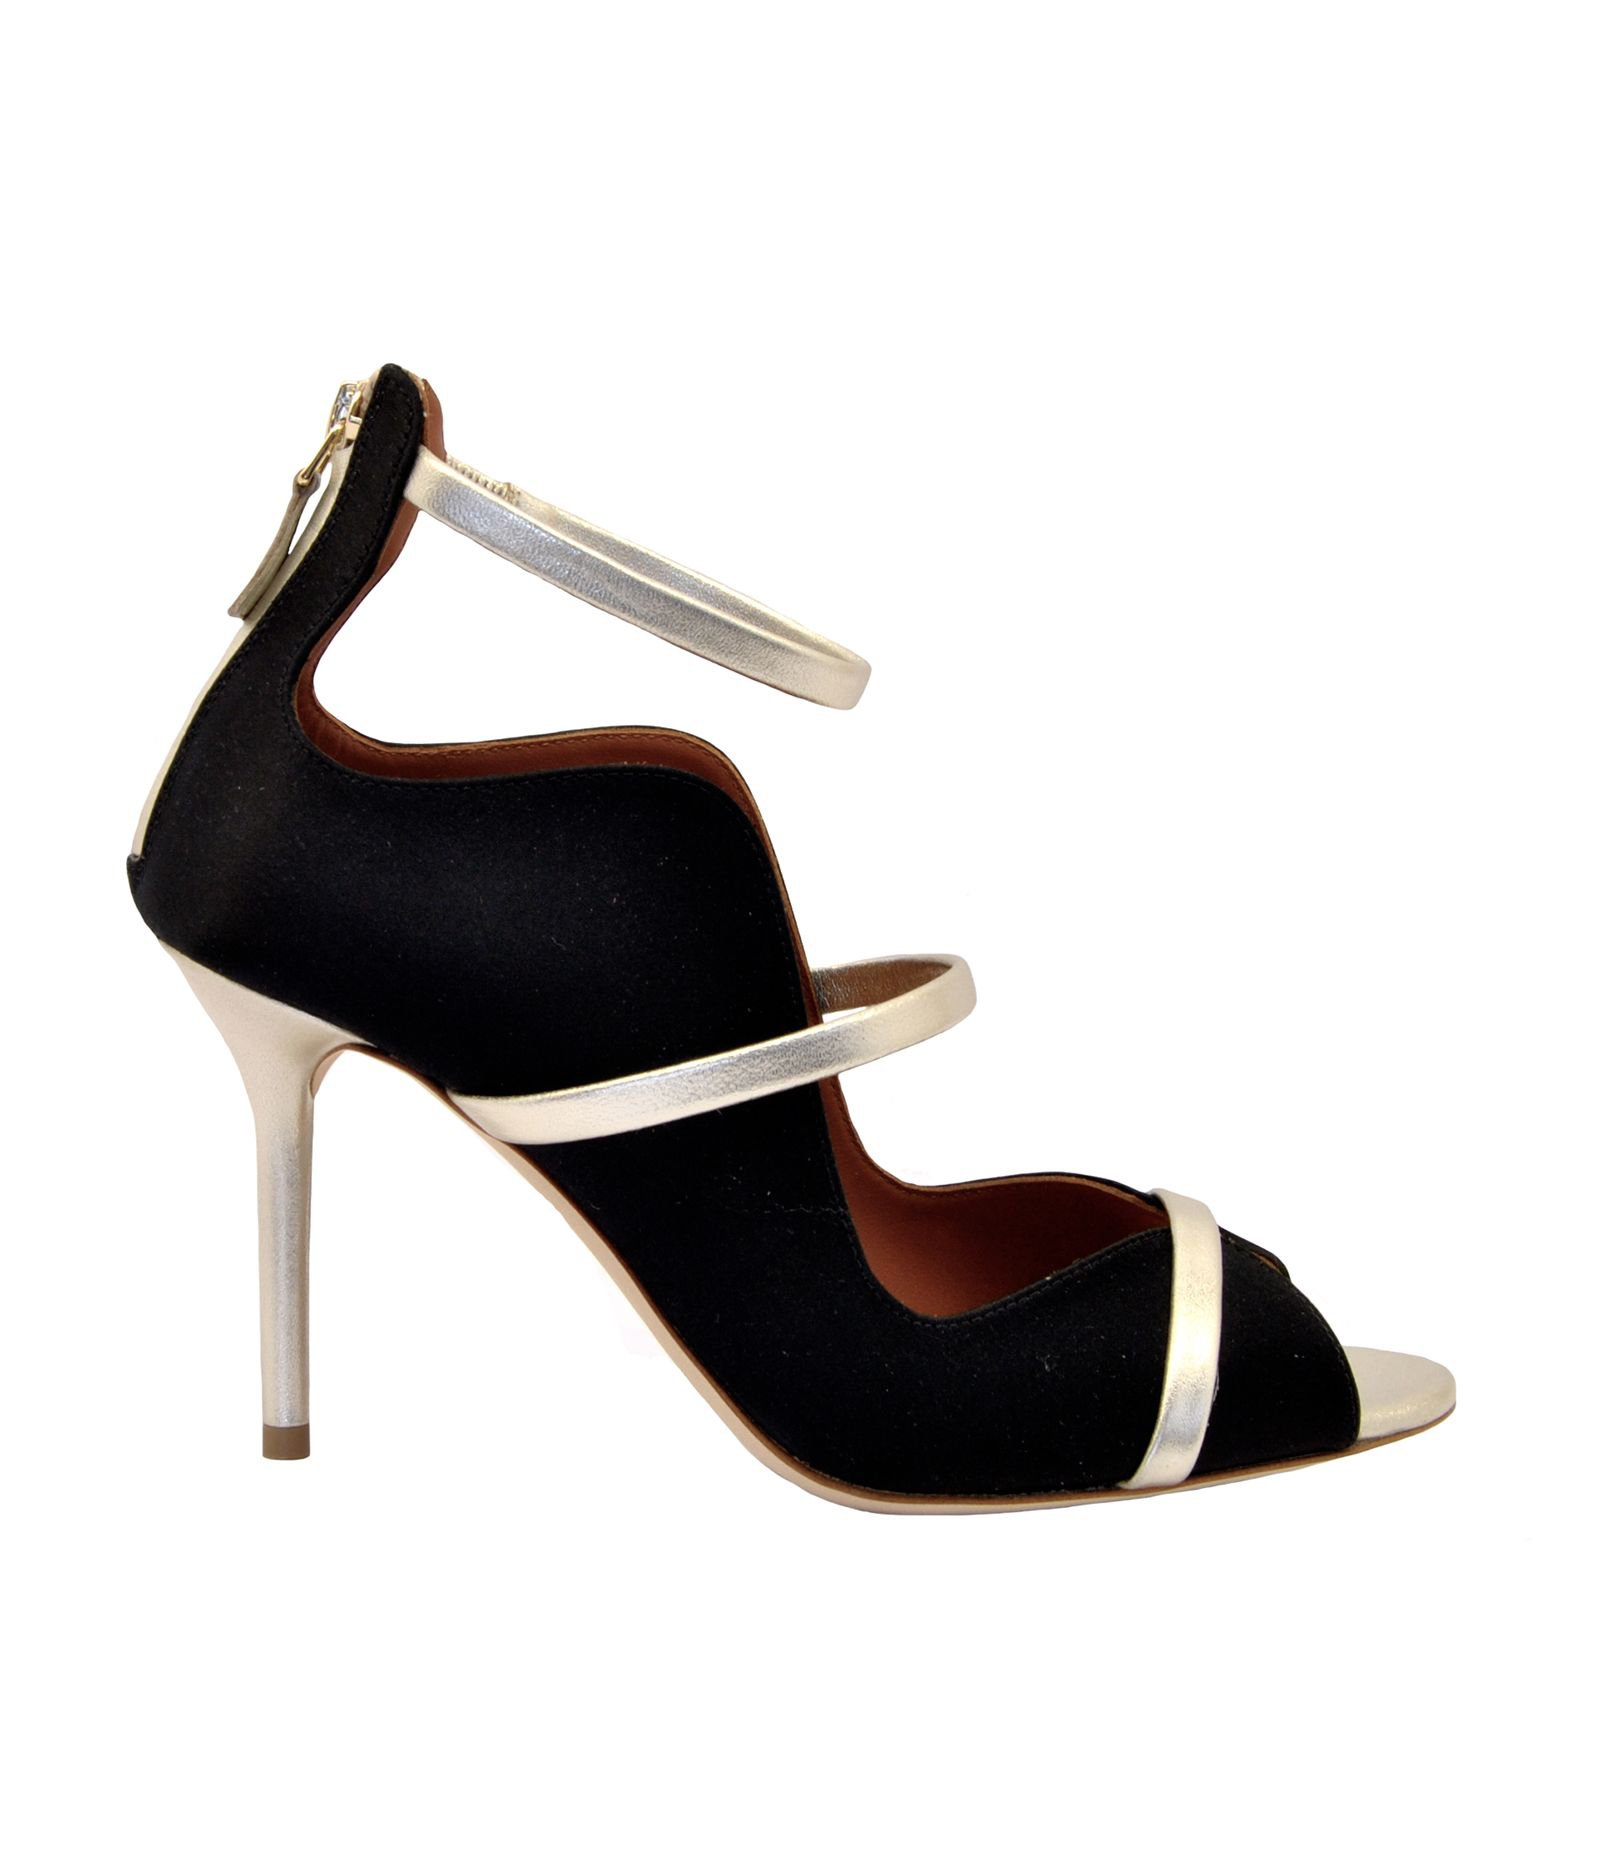 Malone Souliers Mika Strappy Pumps